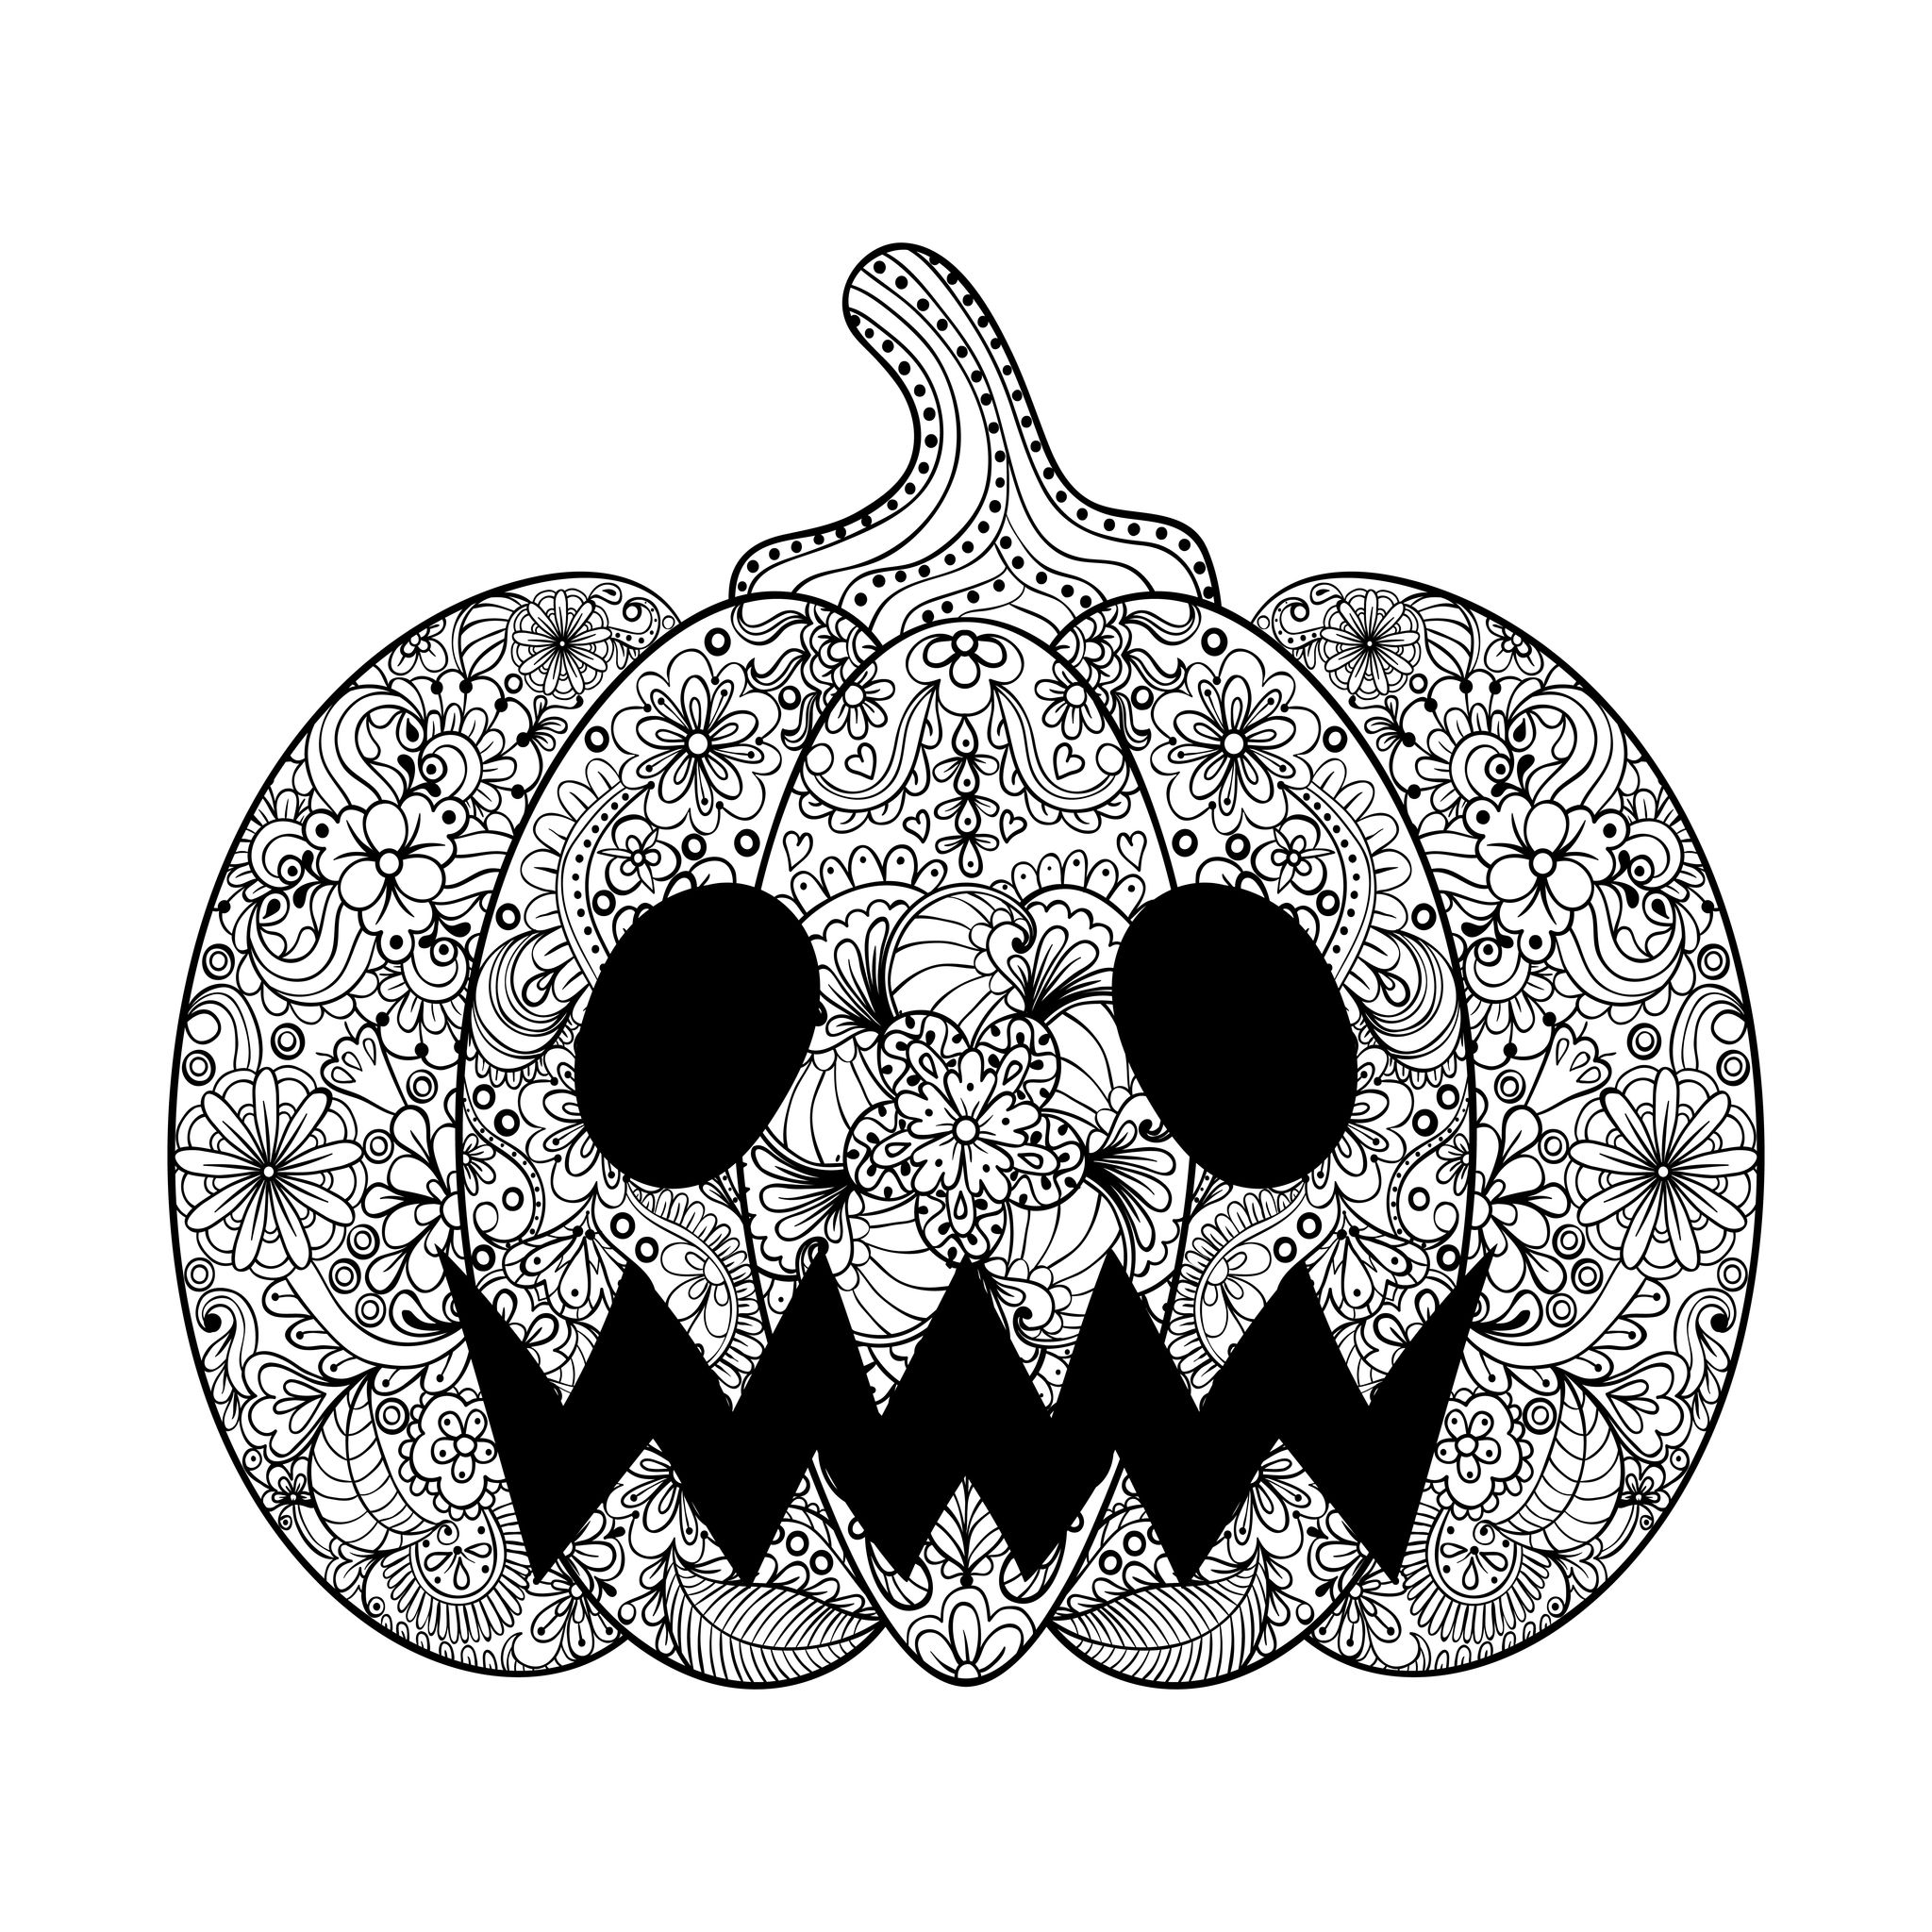 Coloring pictures for adults - Coloring Adult Halloween Scary Pumpkin By Ipanki Free To Print